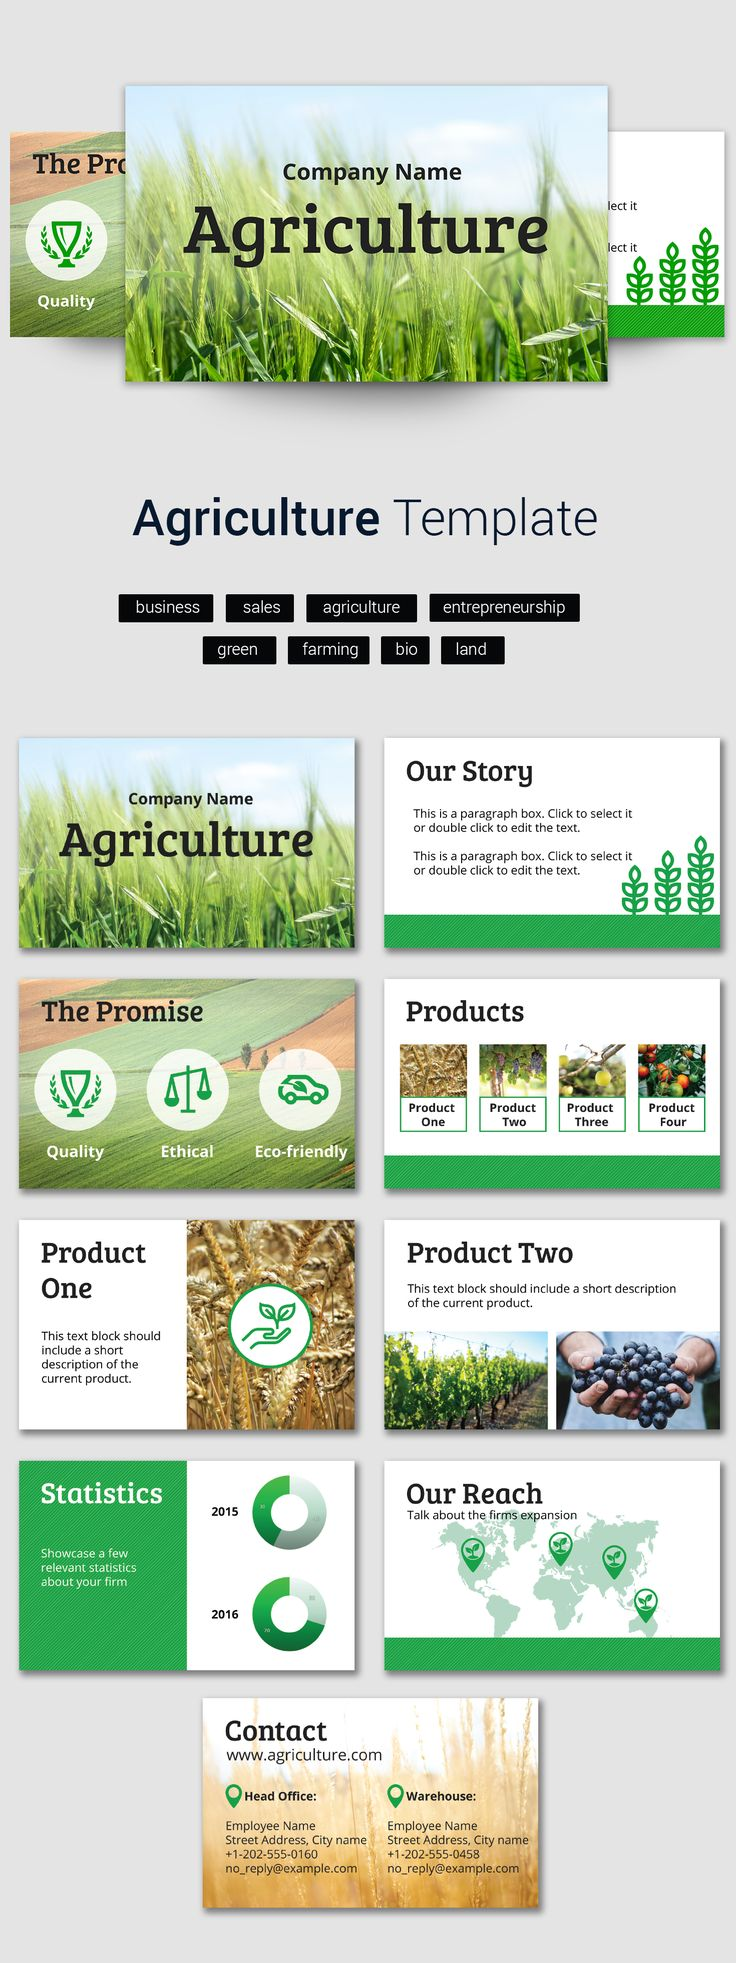 The search is over! Here's the #agribusiness presentation template that you were looking for!   #agriculture #organic